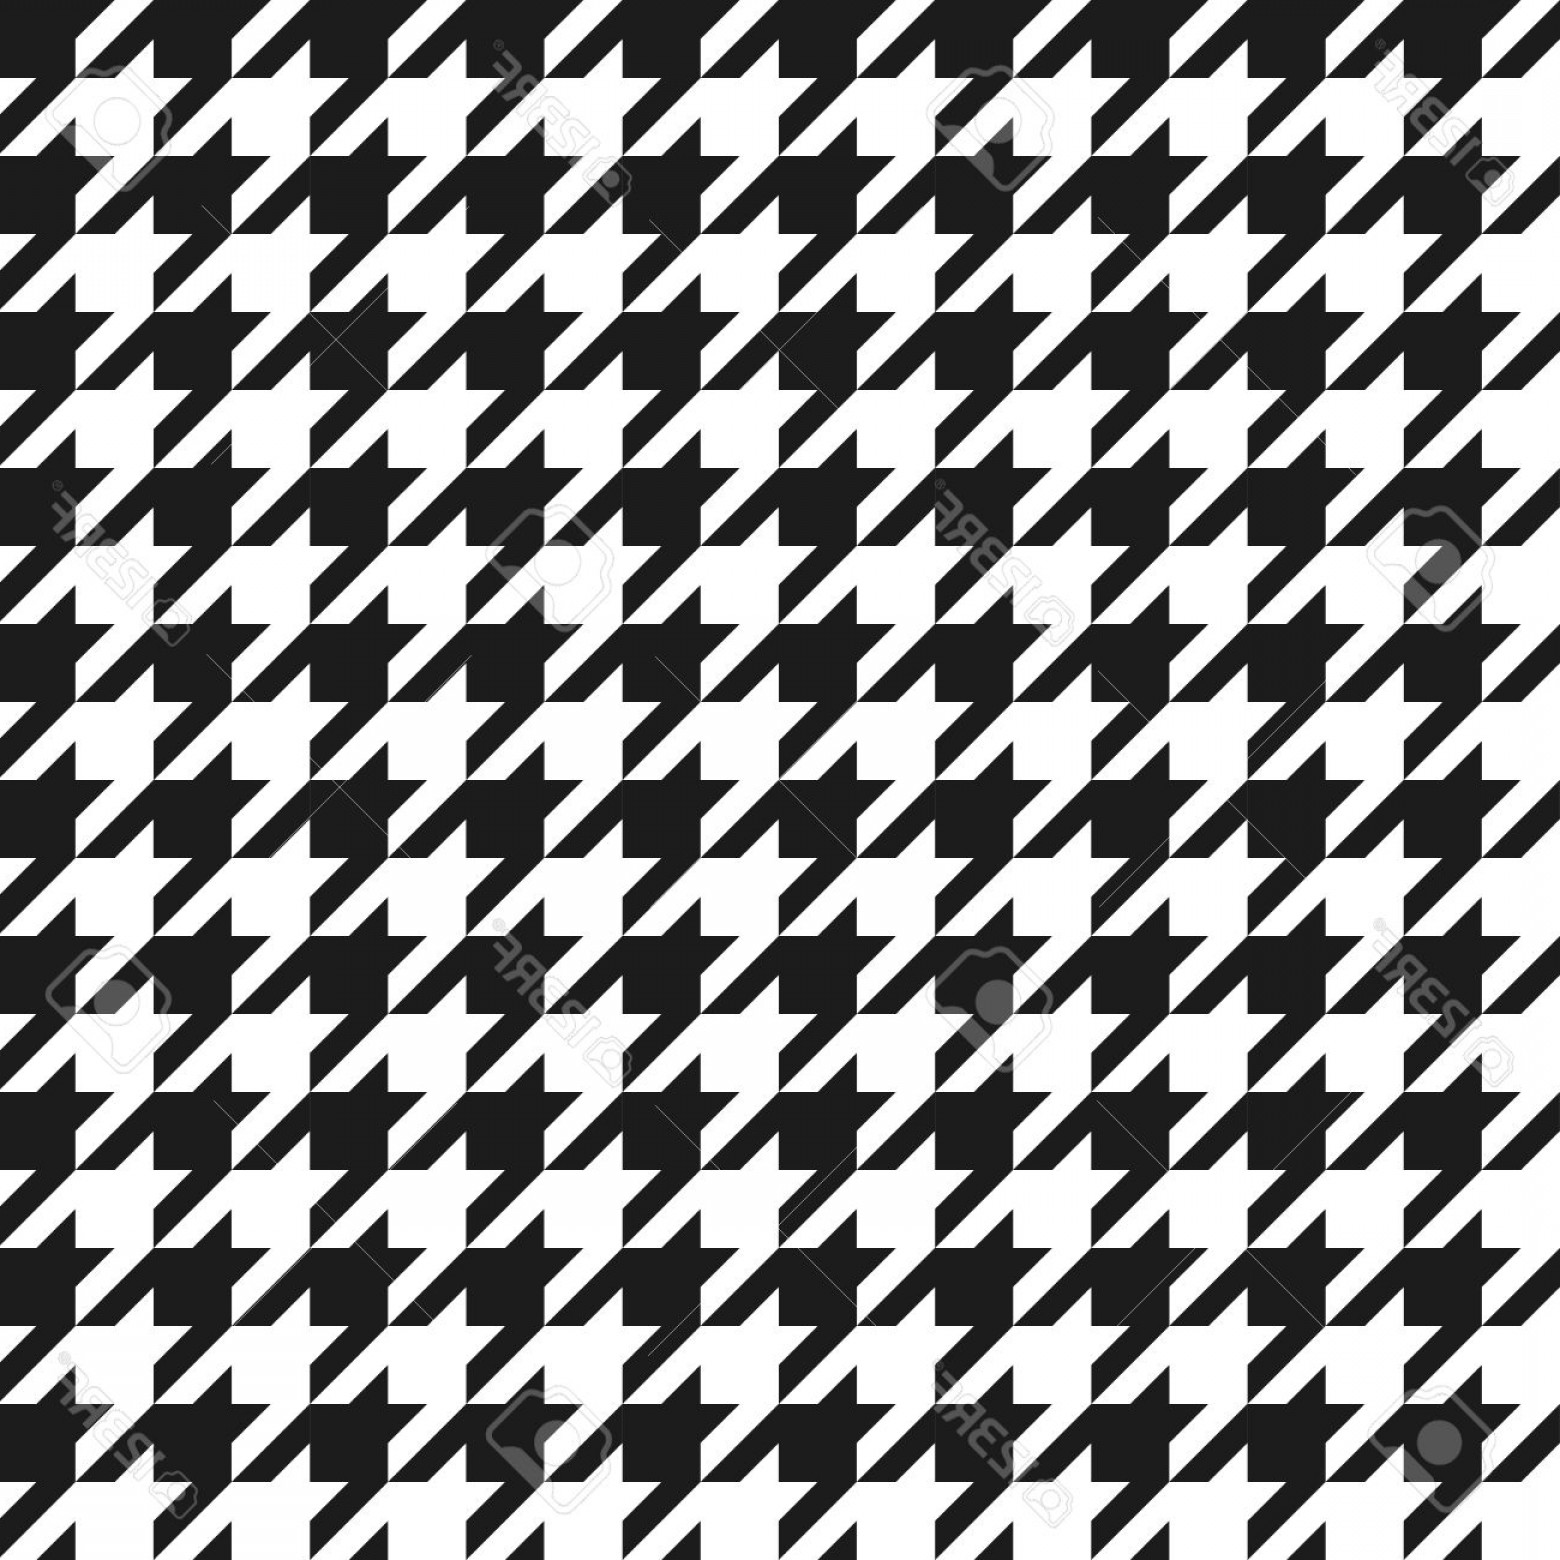 Houndstooth Vector: Photoseamless Black And White Houndstooth Vector Pattern